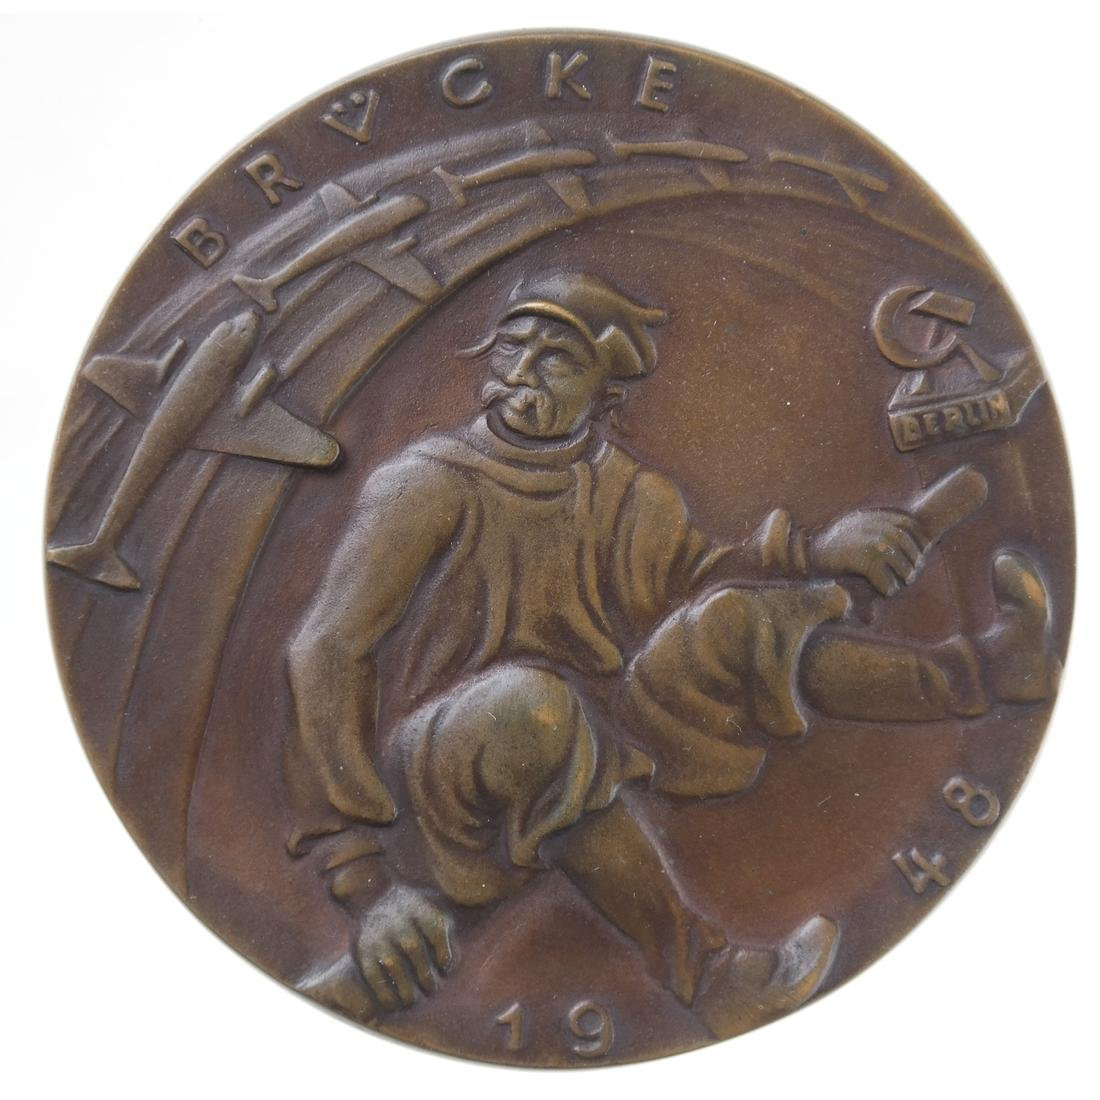 GERMANY. ANGLO-AMERICAN BERLIN AIRLIFT MEDALLION, 1948